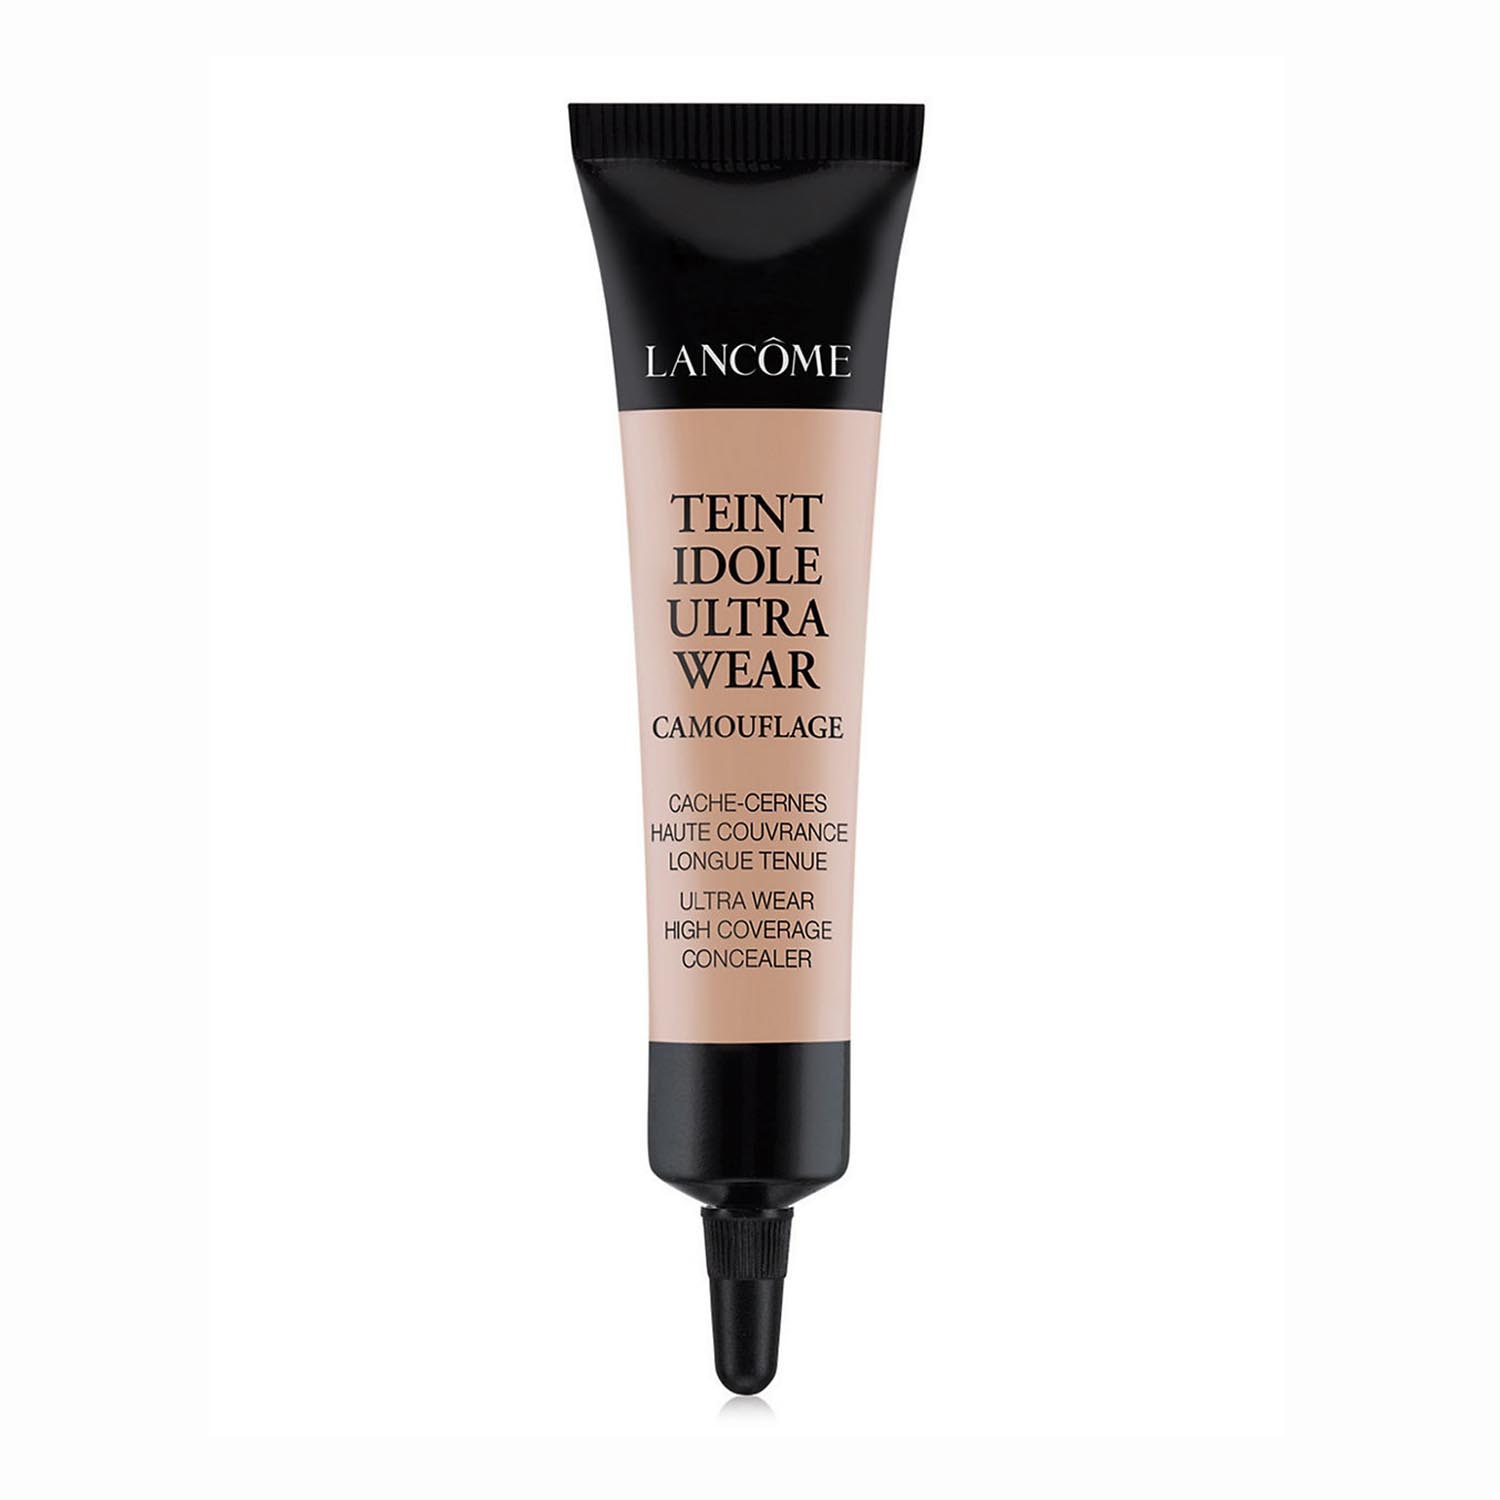 Lancome teint idole ultra wear camouflage concealer 011 muscade